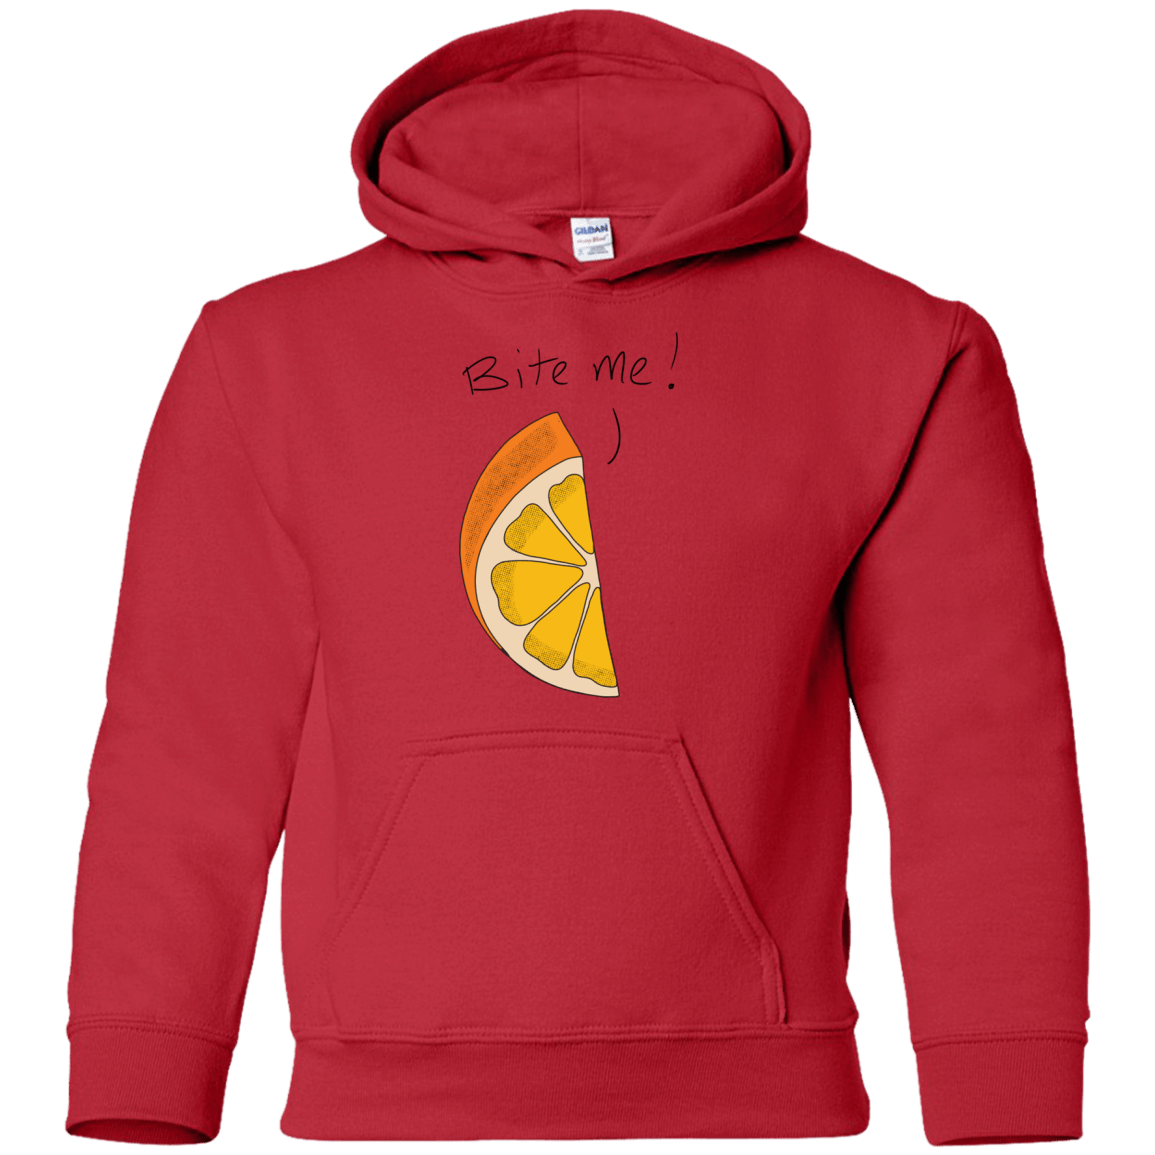 Bite me! Youth Pullover Hoodie